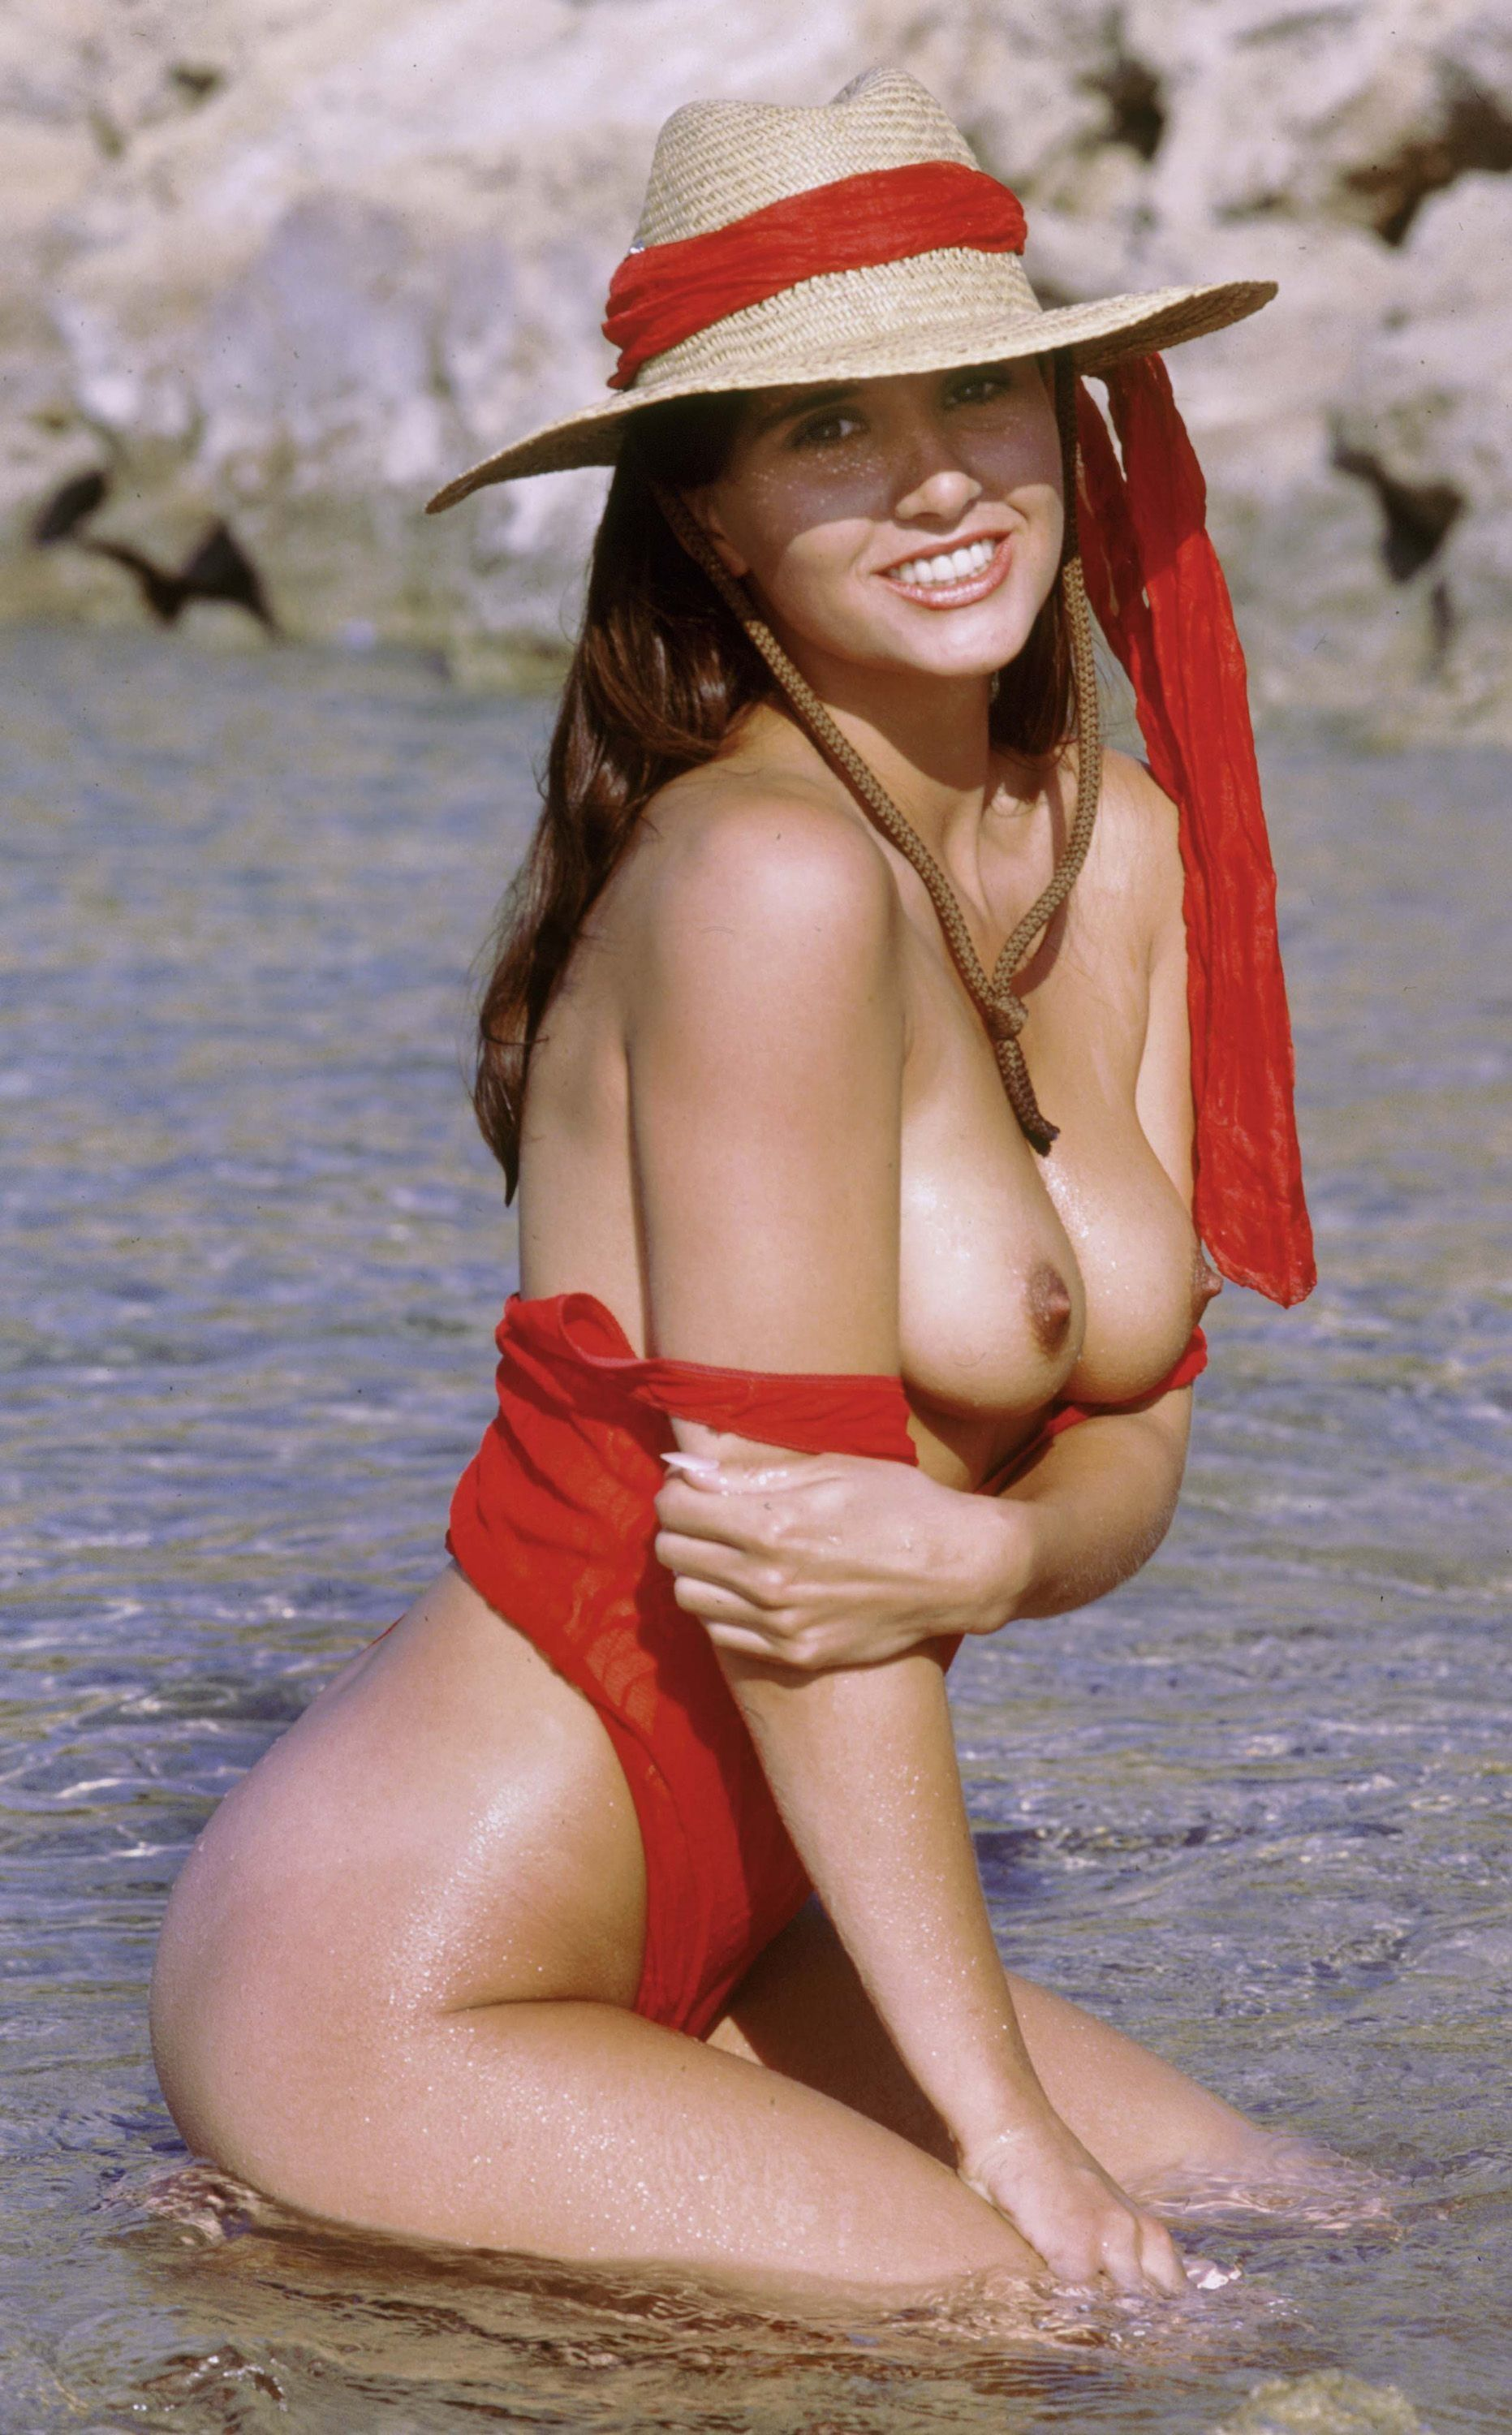 Discussion on this topic: Ali michael young, we-miss-jayne-middlemiss-topless-pictures-edition/